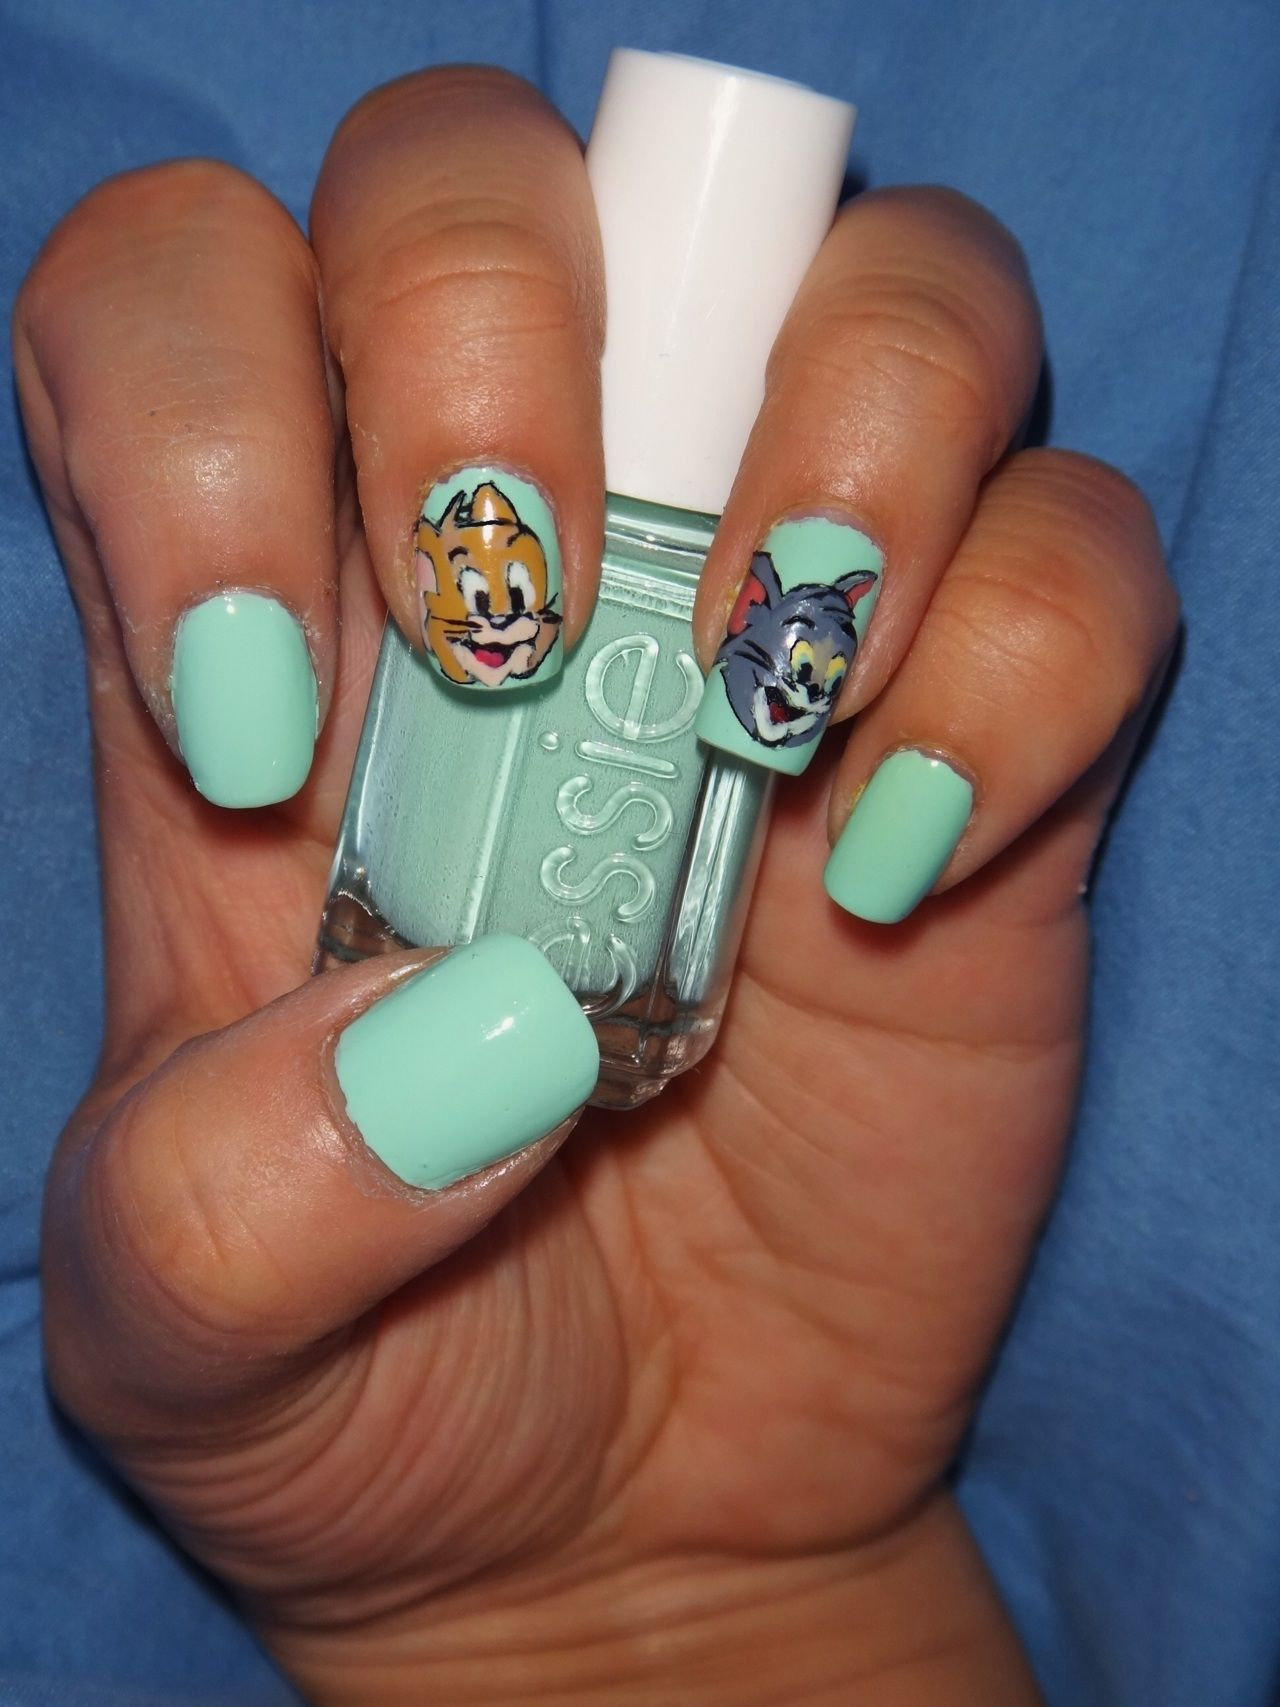 Tomjerry Nails Nail Art Pinterest Nail Arts Nails And Nail